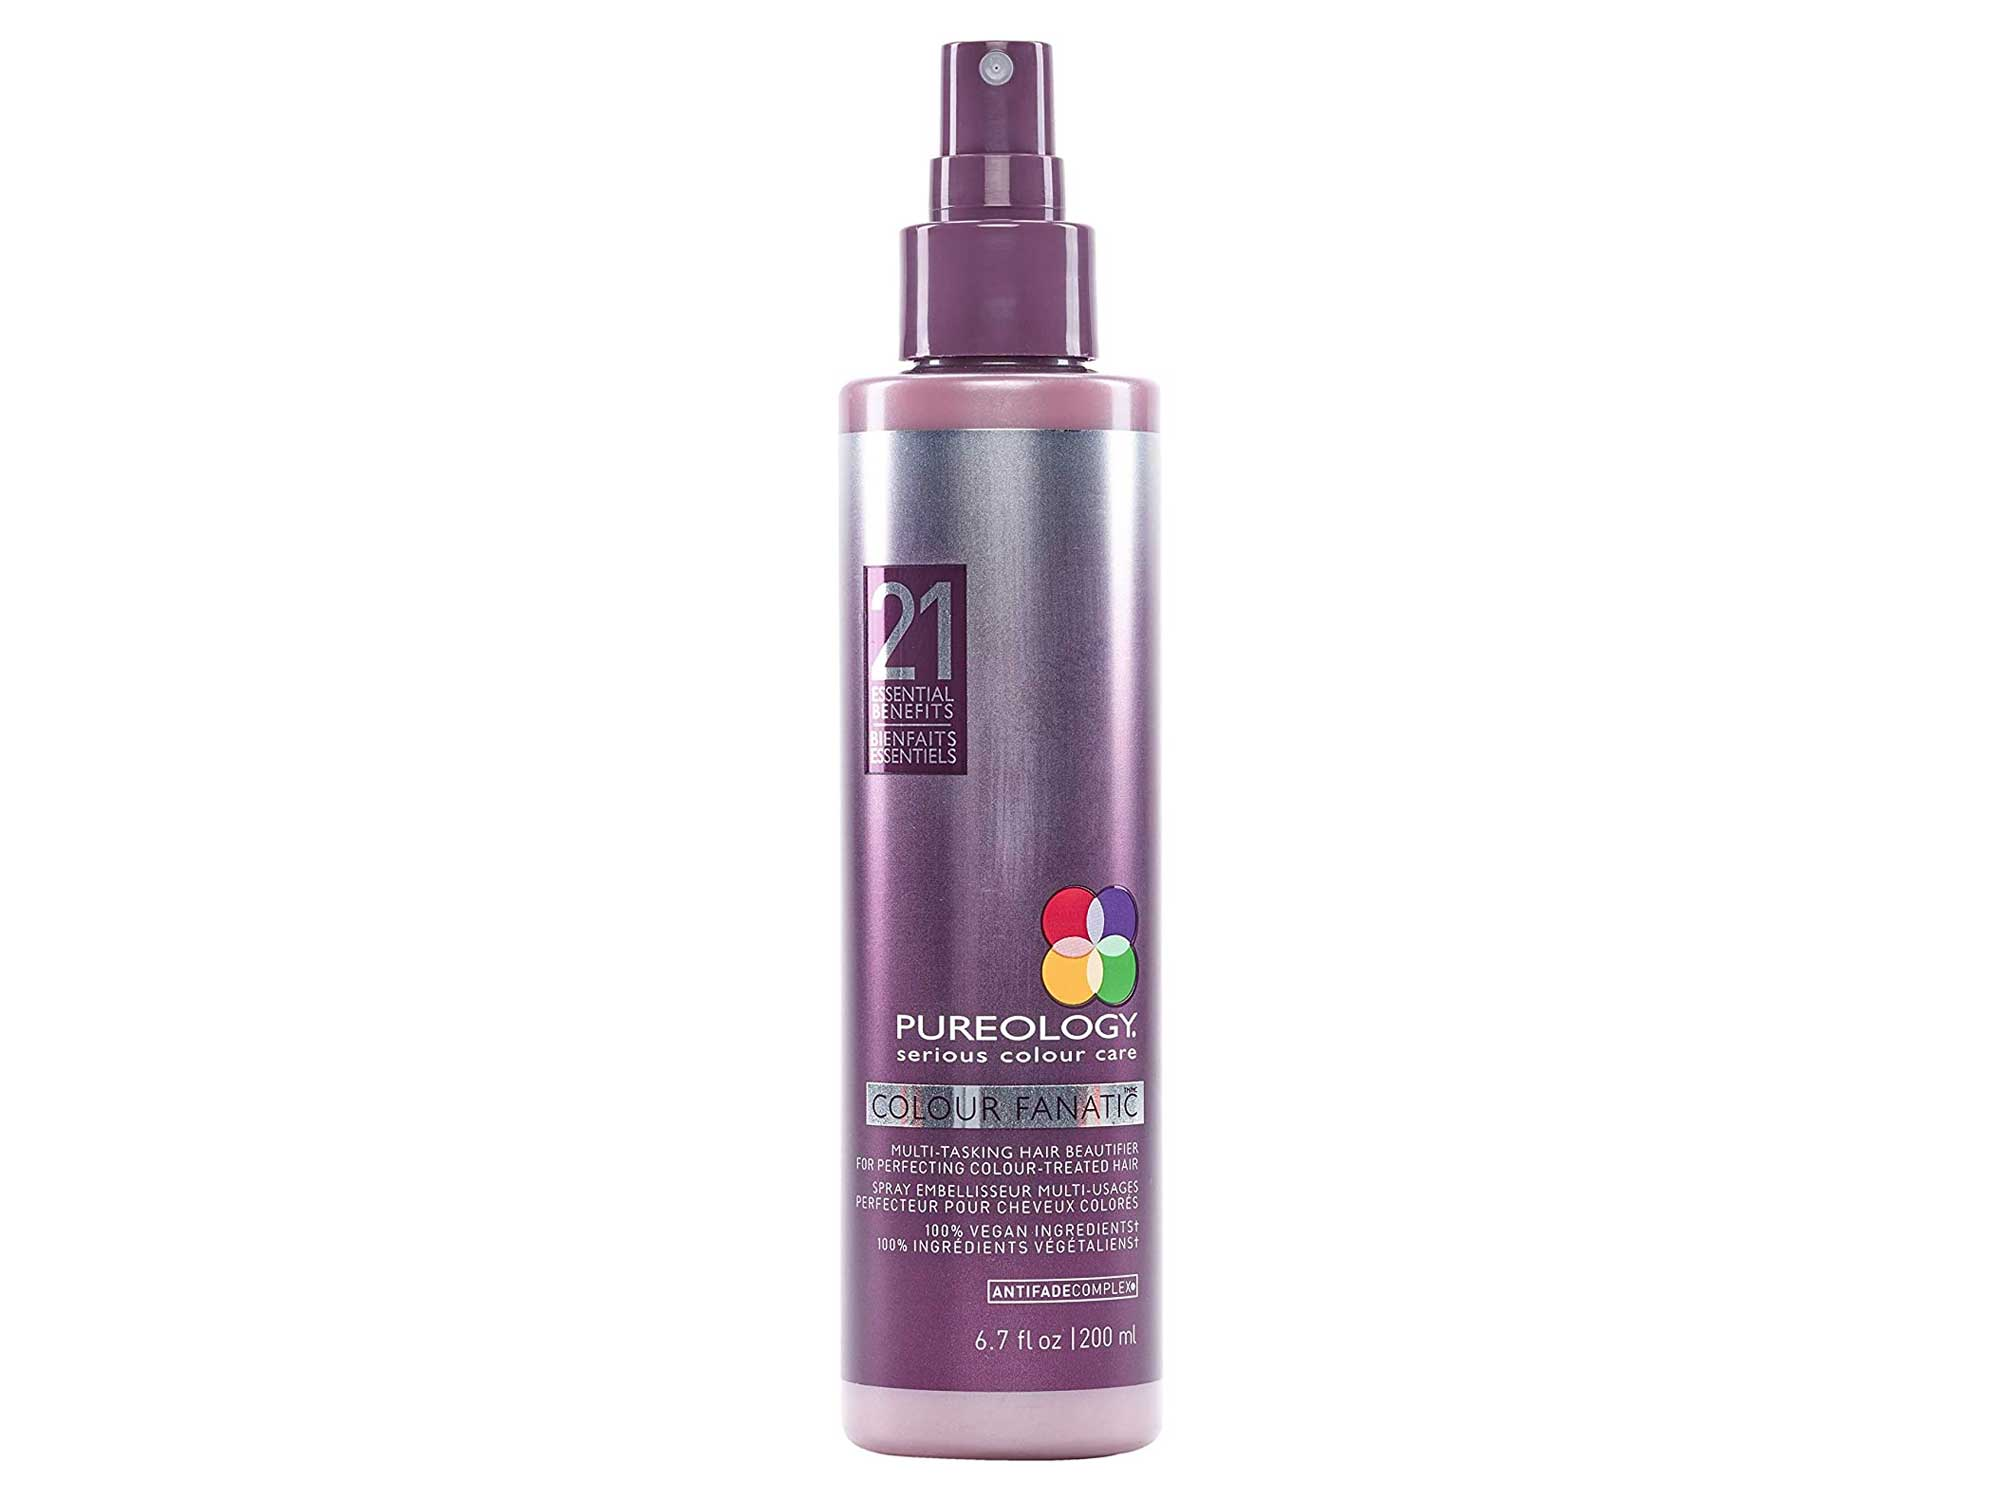 Pureology   Colour Fanatic Leave-in Conditioner Hair Treatment Detangling Spray   Protects Hair Color From Fading   Heat Protectant   Vegan